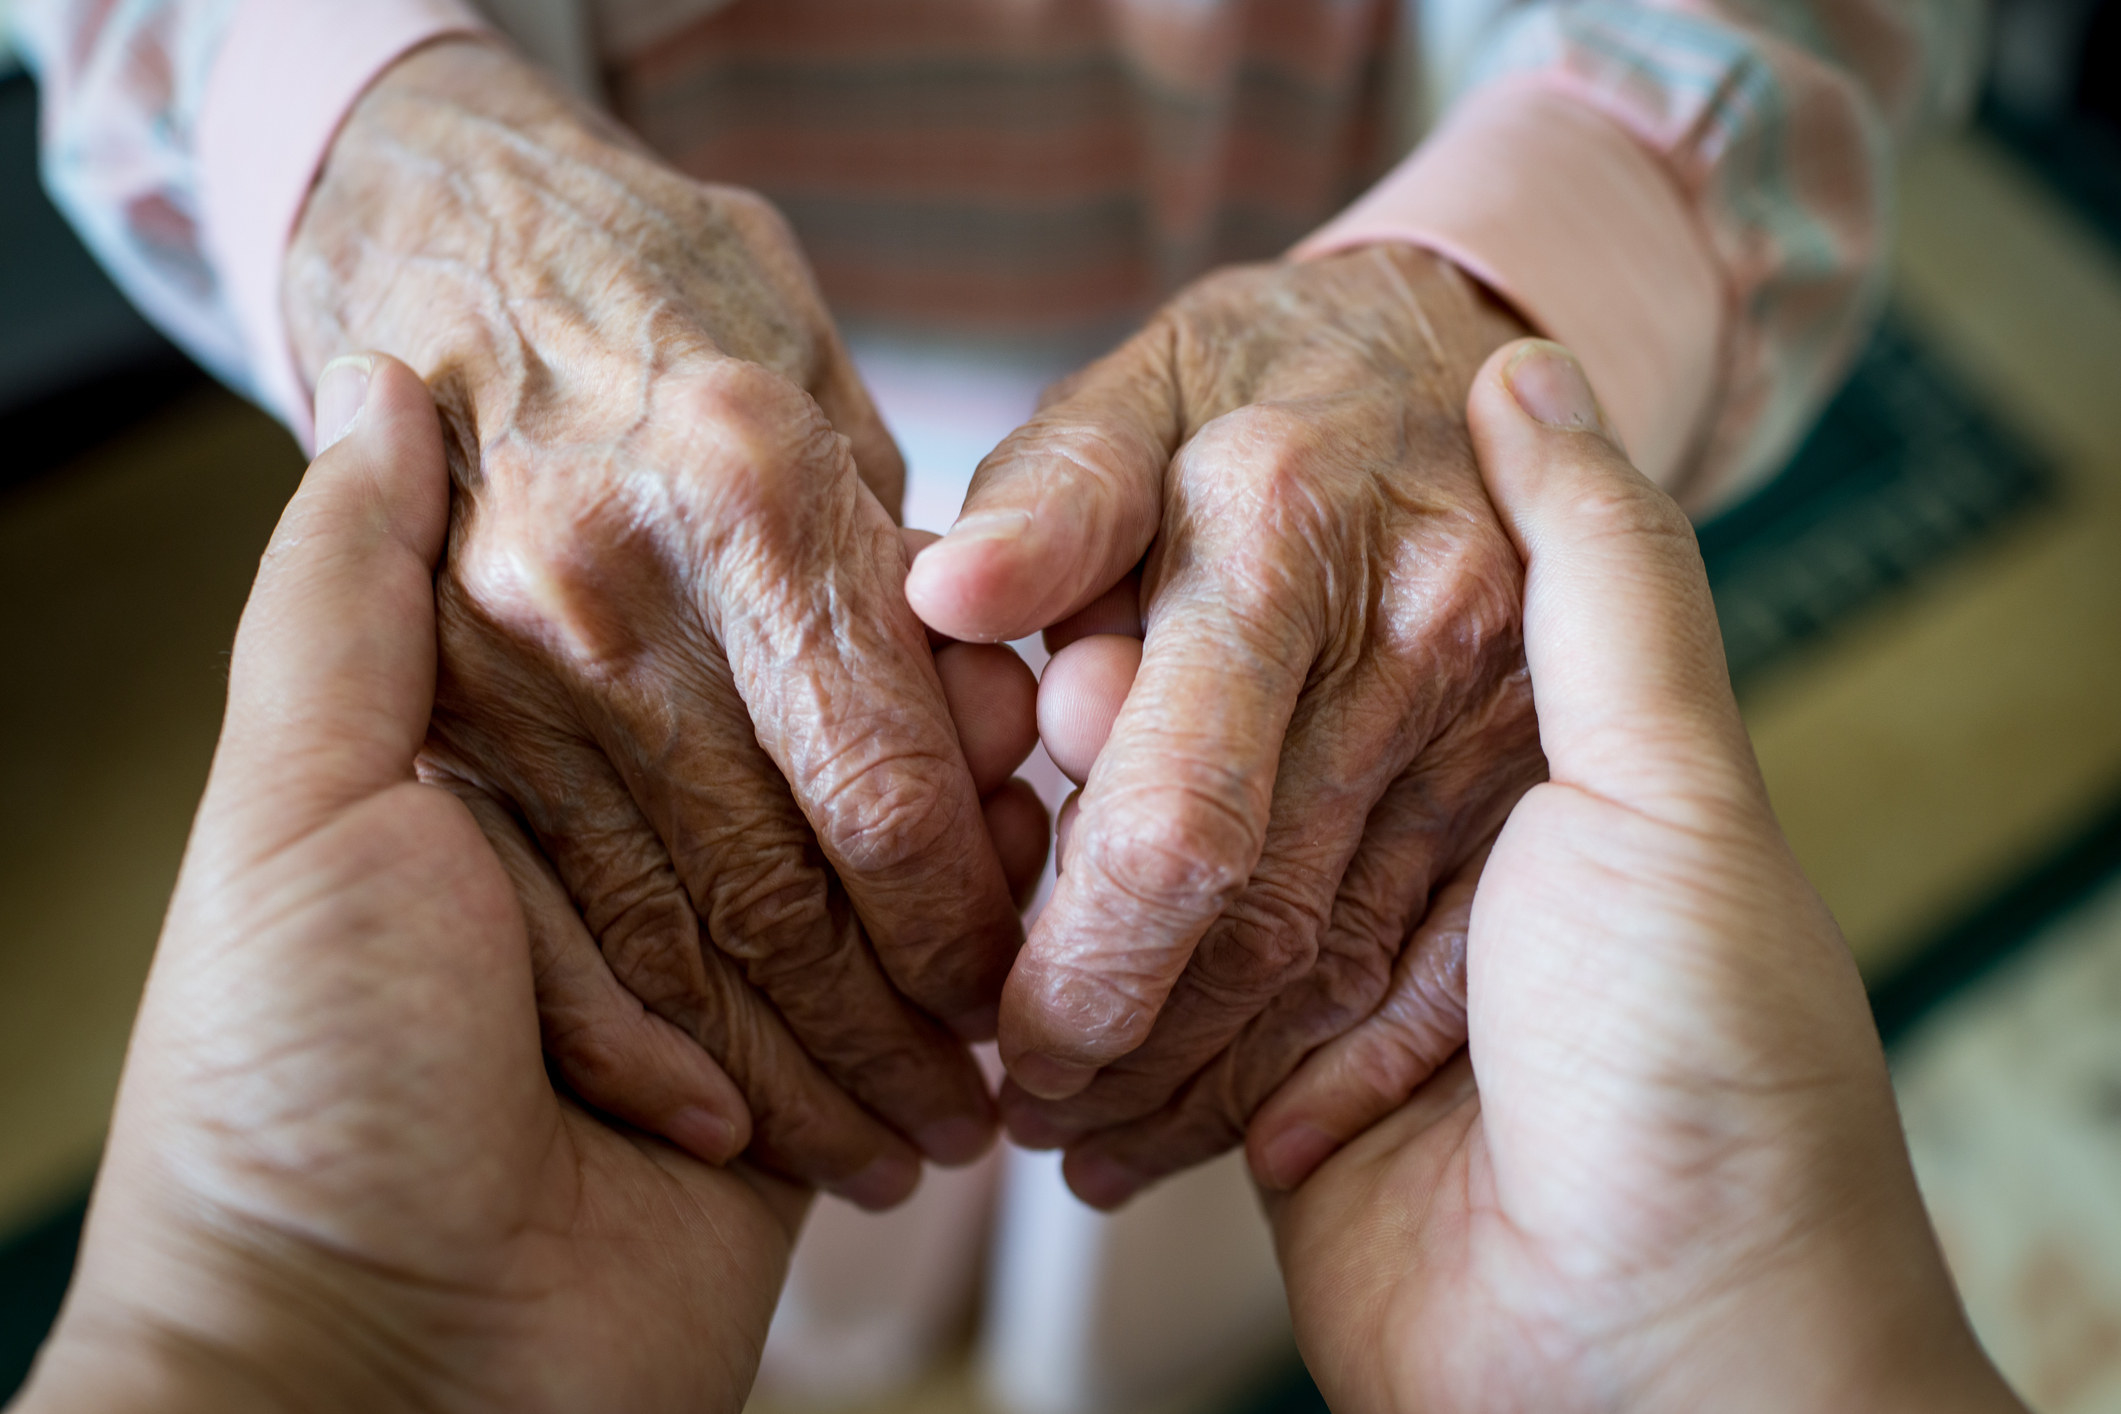 A young person holds the hands of an elderly person